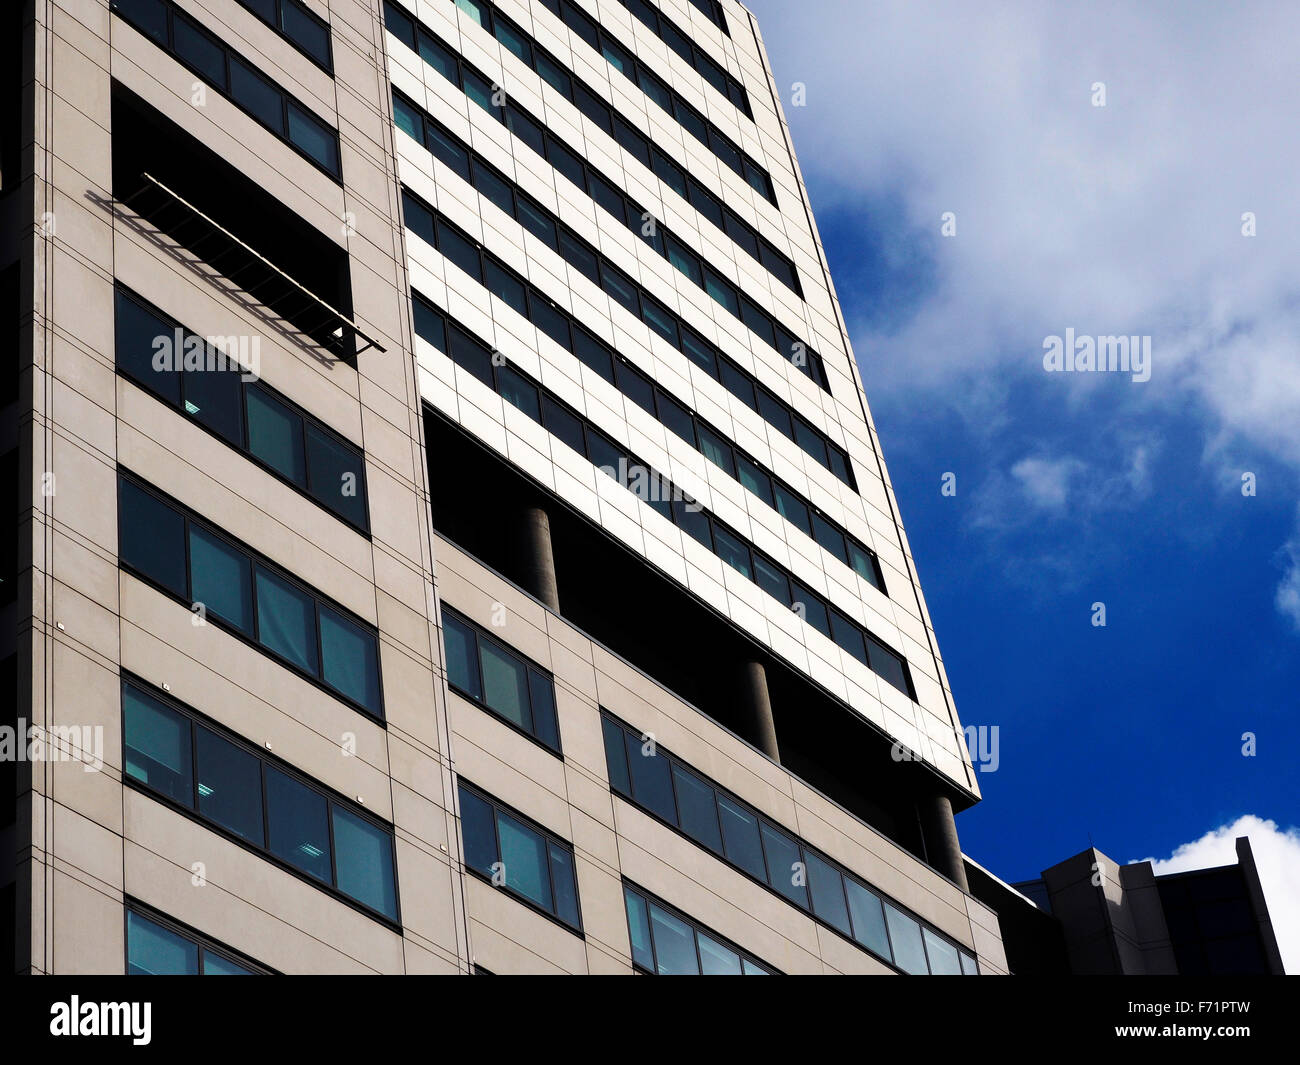 Bridgewater Place Office and Residential Skyscraper in Leeds West Yorkshire England - Stock Image